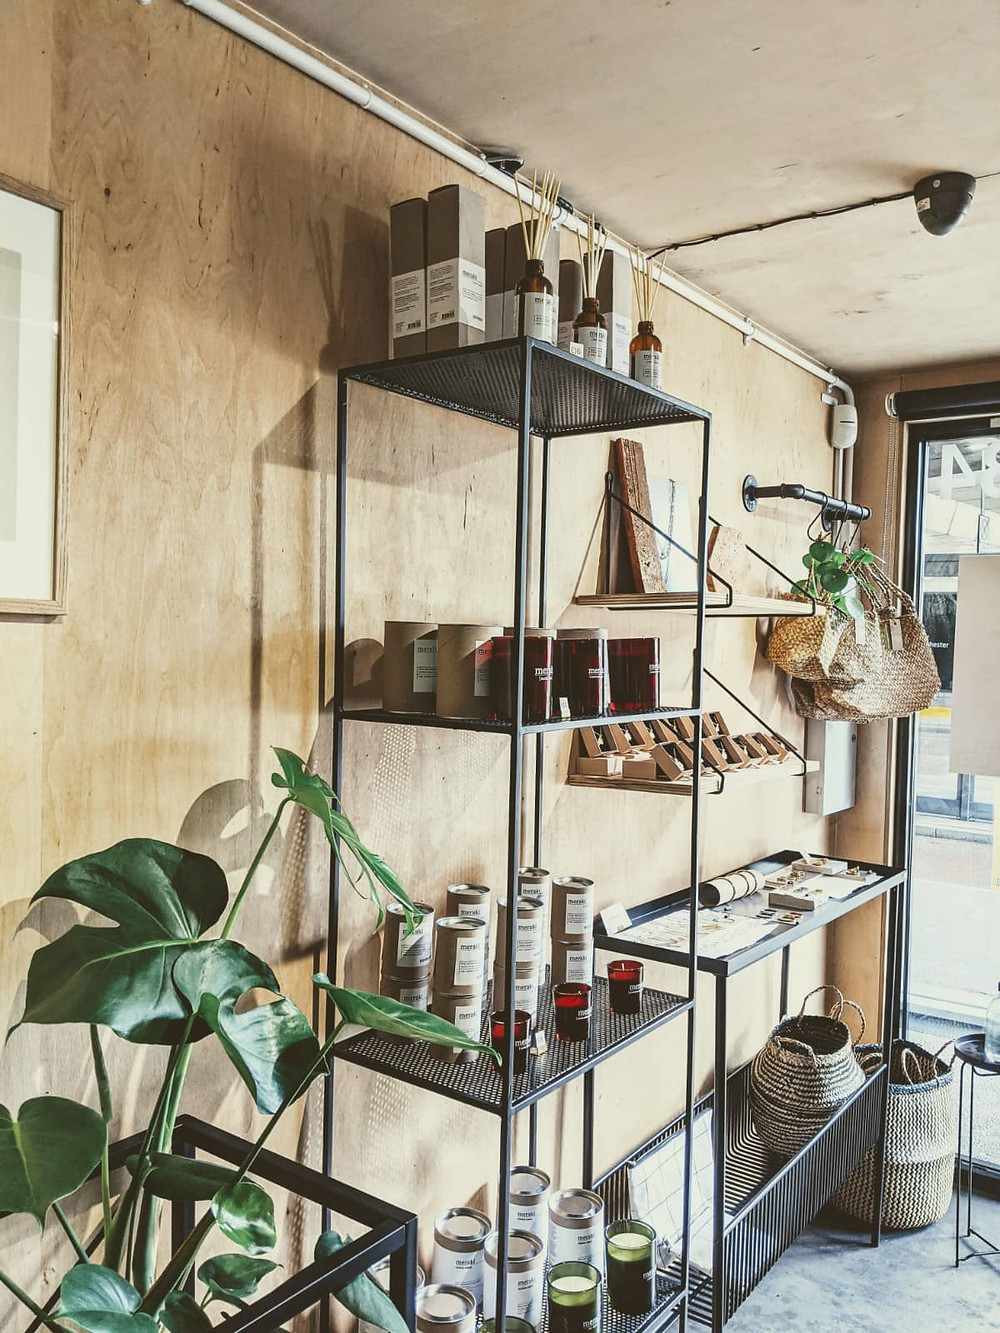 Handmade, ethical homeware shop in Manchester.